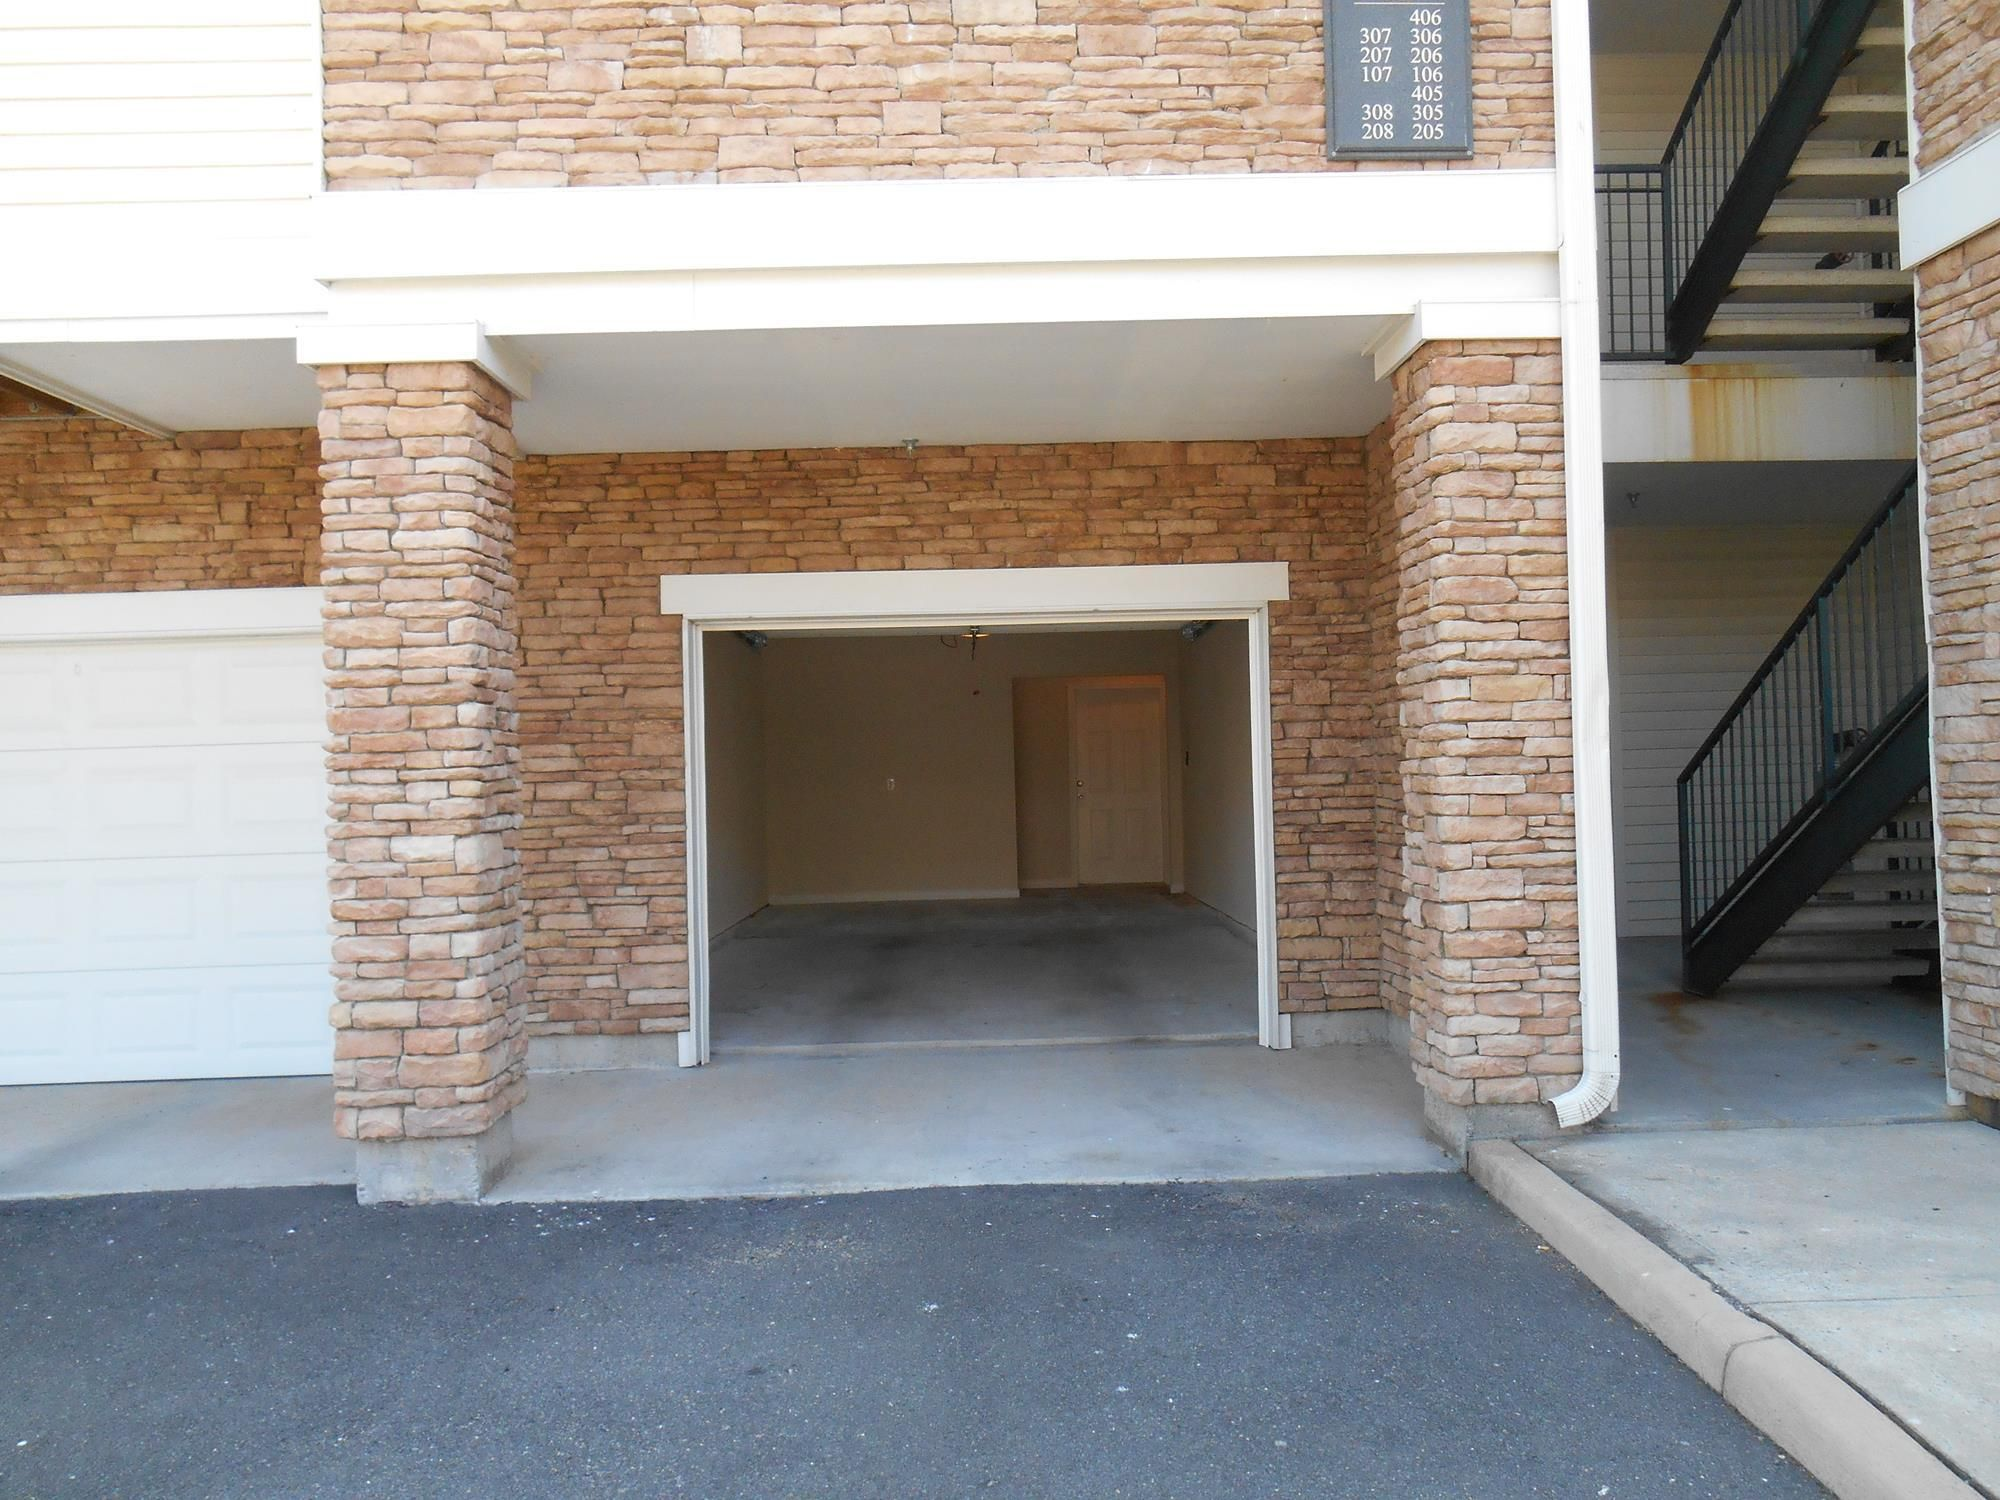 Some Apartments Have Direct Access Garages Apartment Outdoor Decor Property